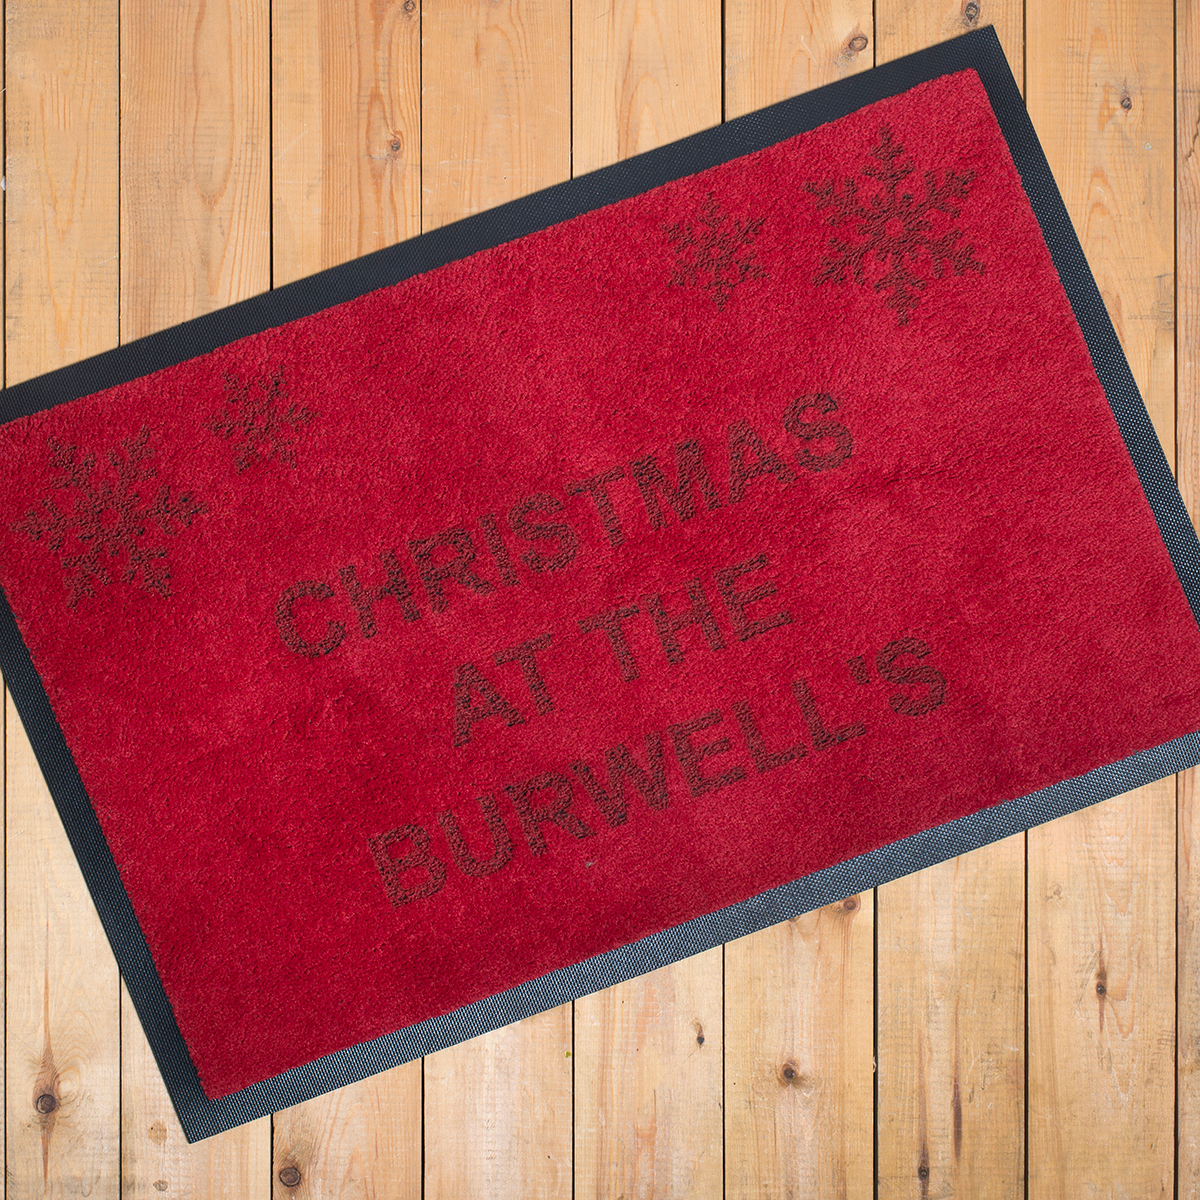 Personalised Indoor Christmas Doormat